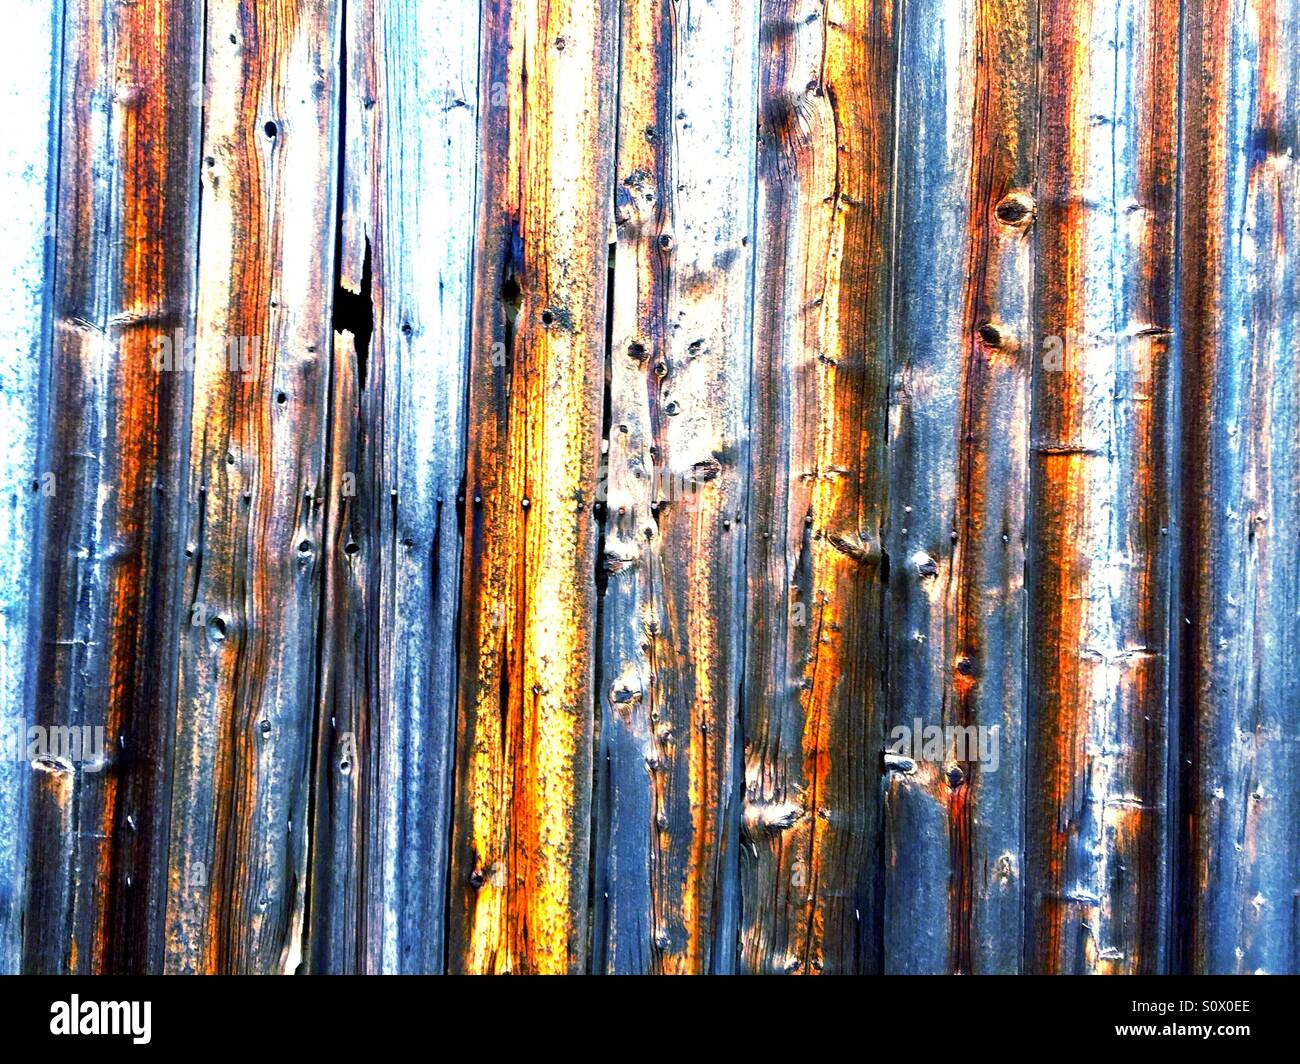 Weathered barn wood - Stock Image